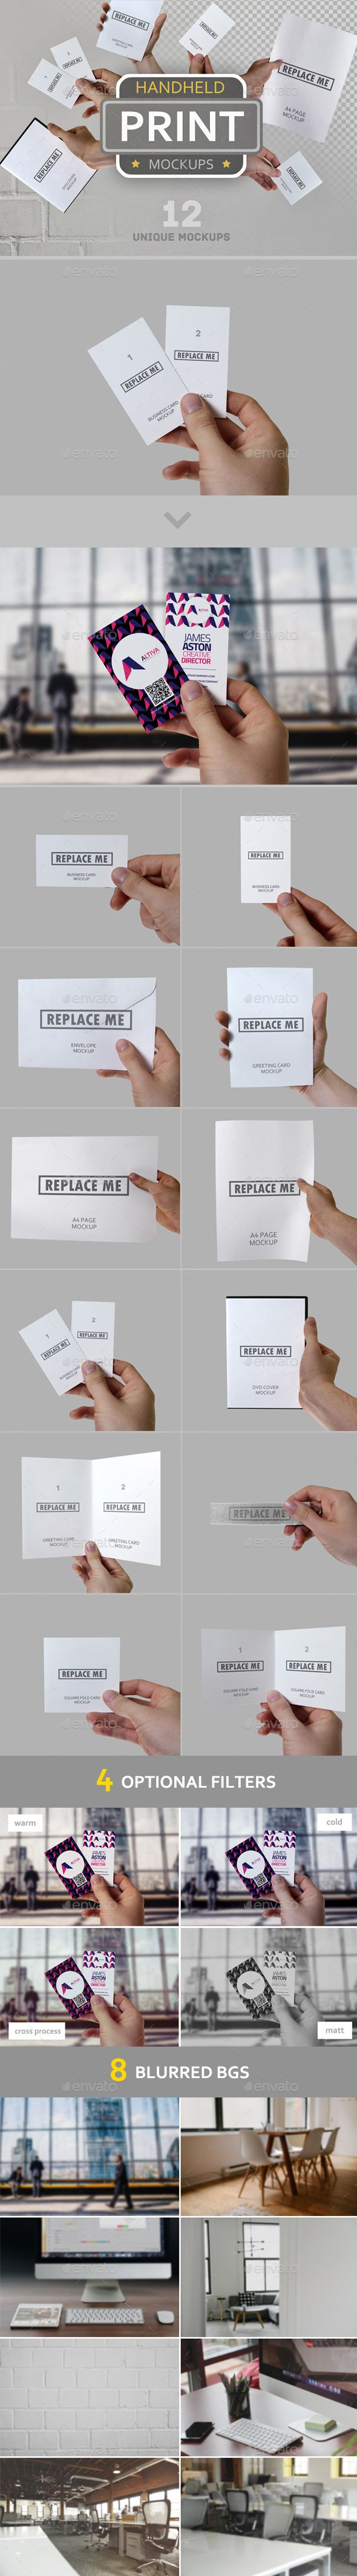 55 best Mockups images on Pinterest | Graphics, Miniatures and Mock up